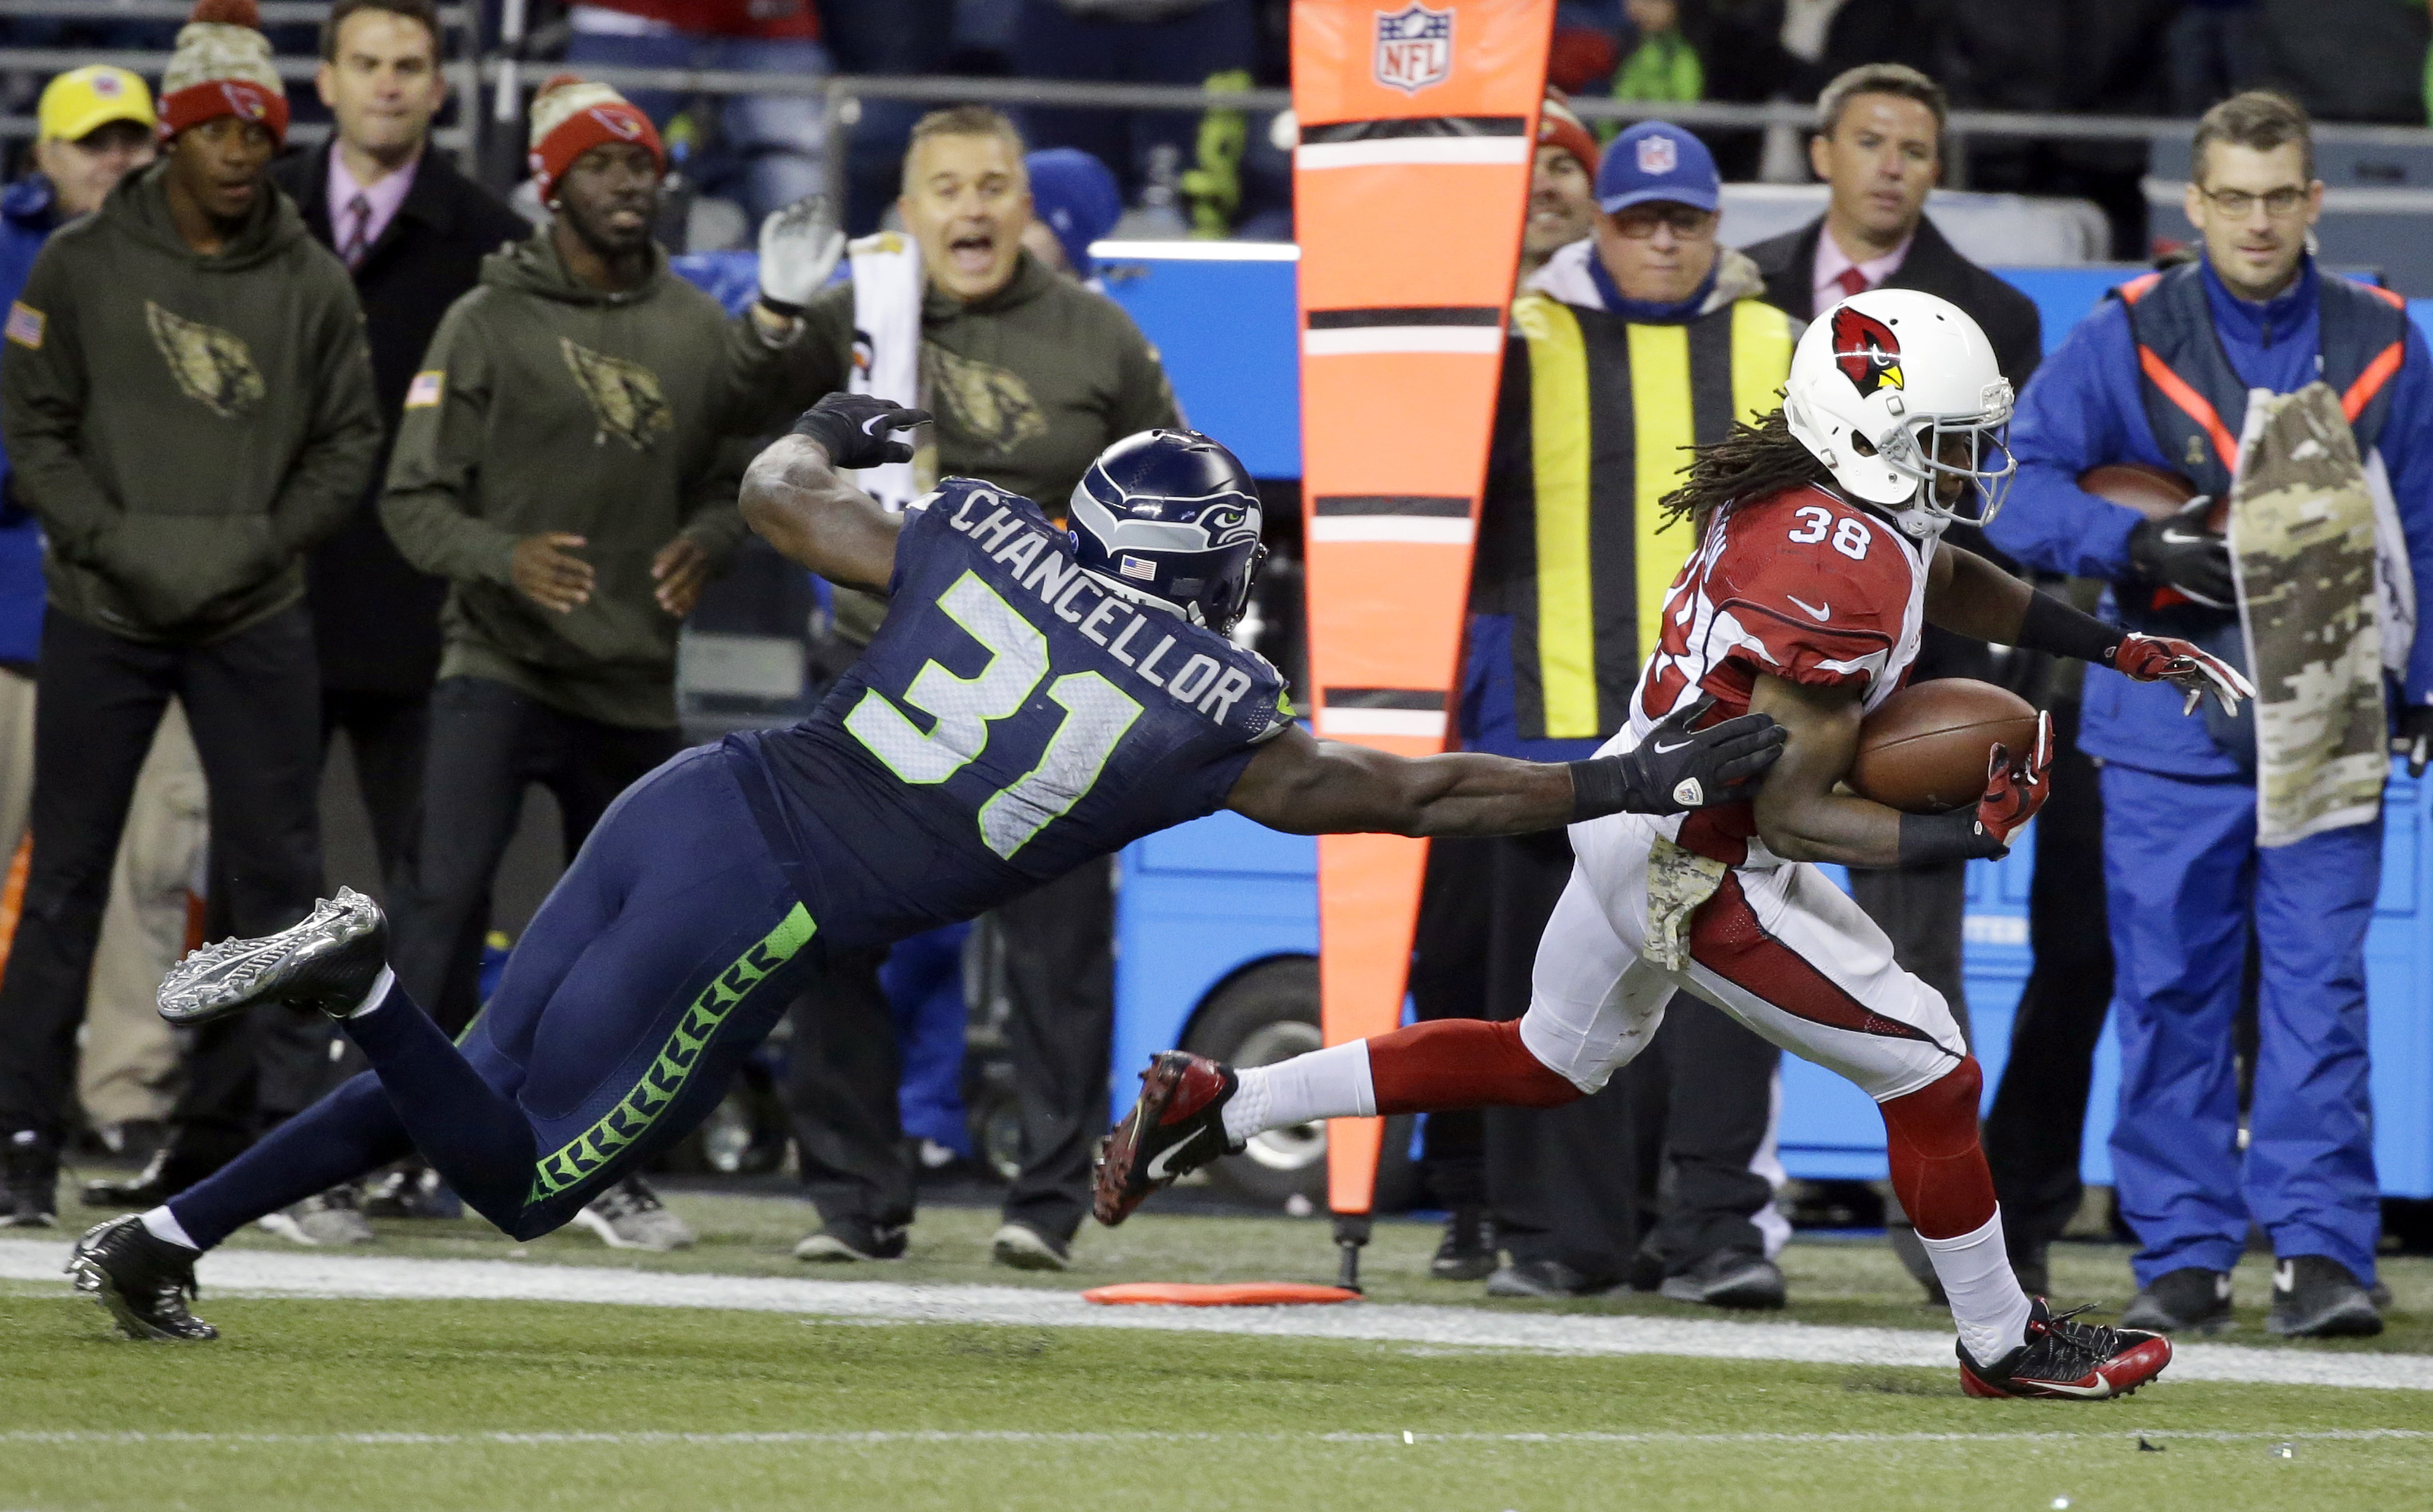 Arizona Cardinals unning back Andre Ellington, right, gets away from Seattle Seahawks strong safety Kam Chancellor (31) as he runs for a touchdown during the second half of an NFL football game, Sunday, Nov. 15, 2015, in Seattle. (AP Photo/Elaine Thompson